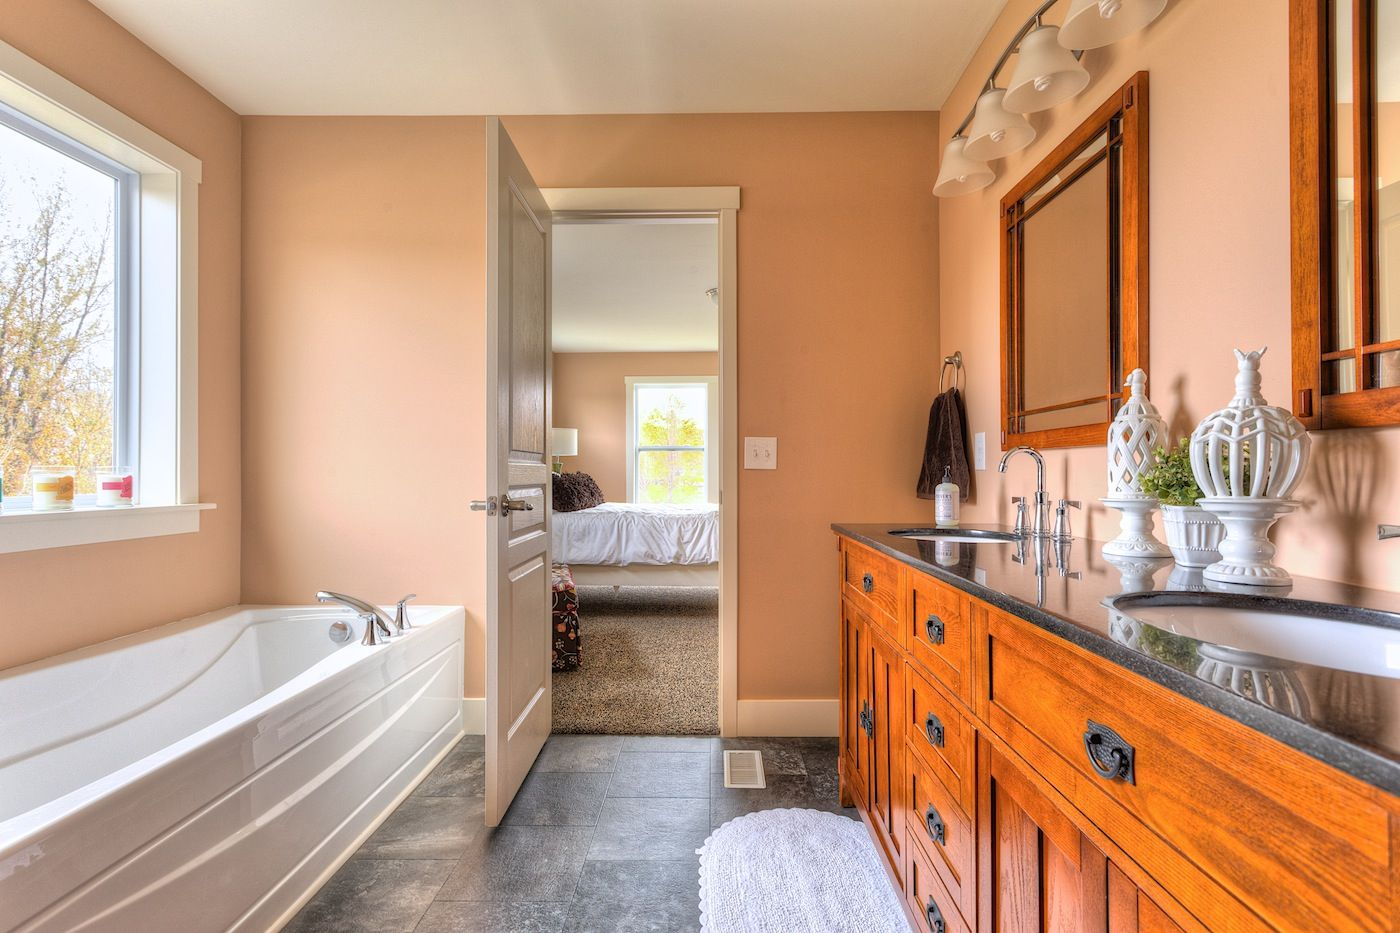 Bathroom featured in the Traditions 2200 V8.0b By Allen Edwin Homes in Elkhart-Goshen, IN